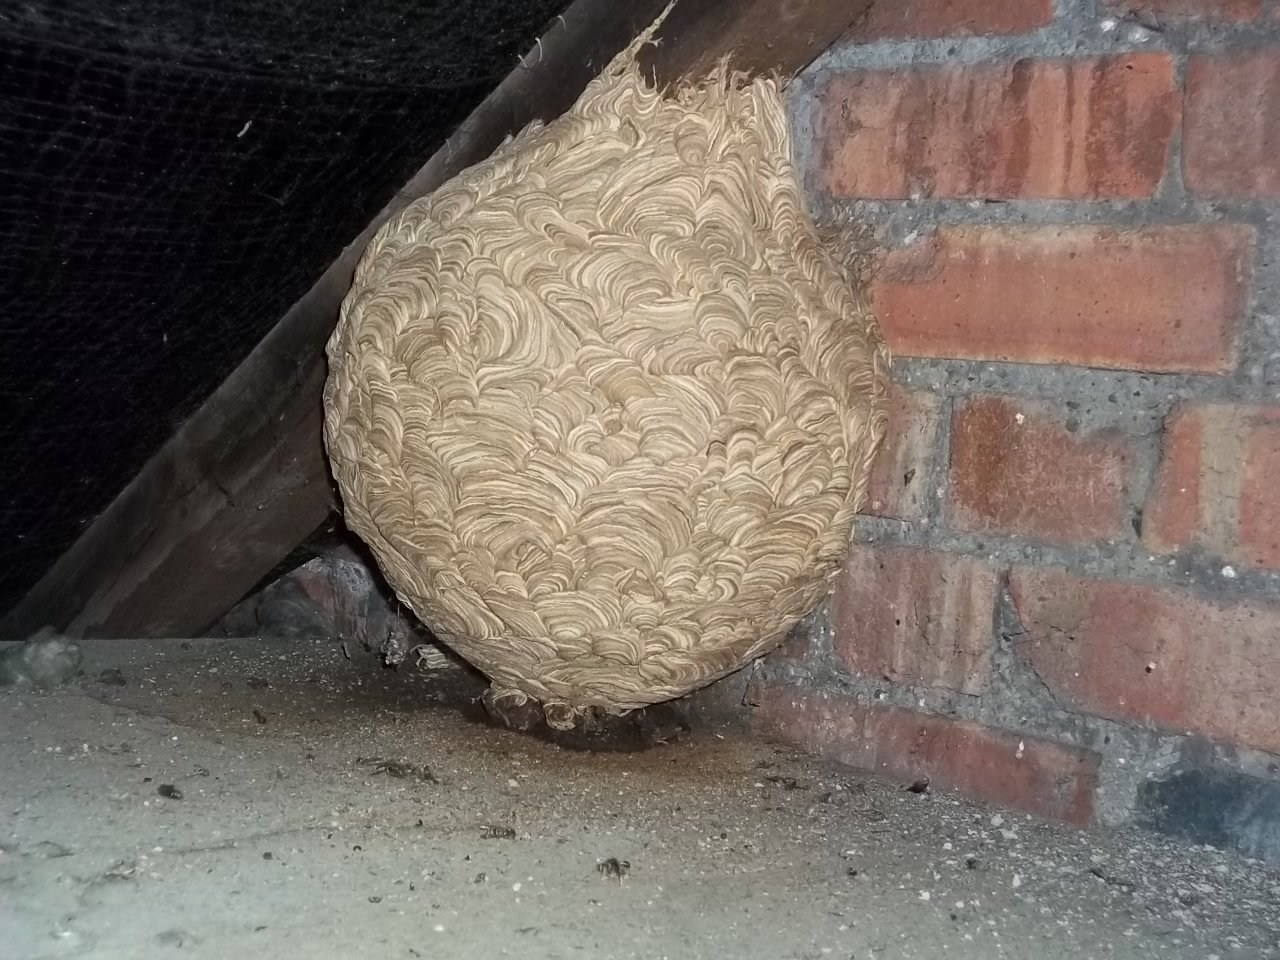 Wasp Nests. Lots of wasps means a high risk of being stung ...